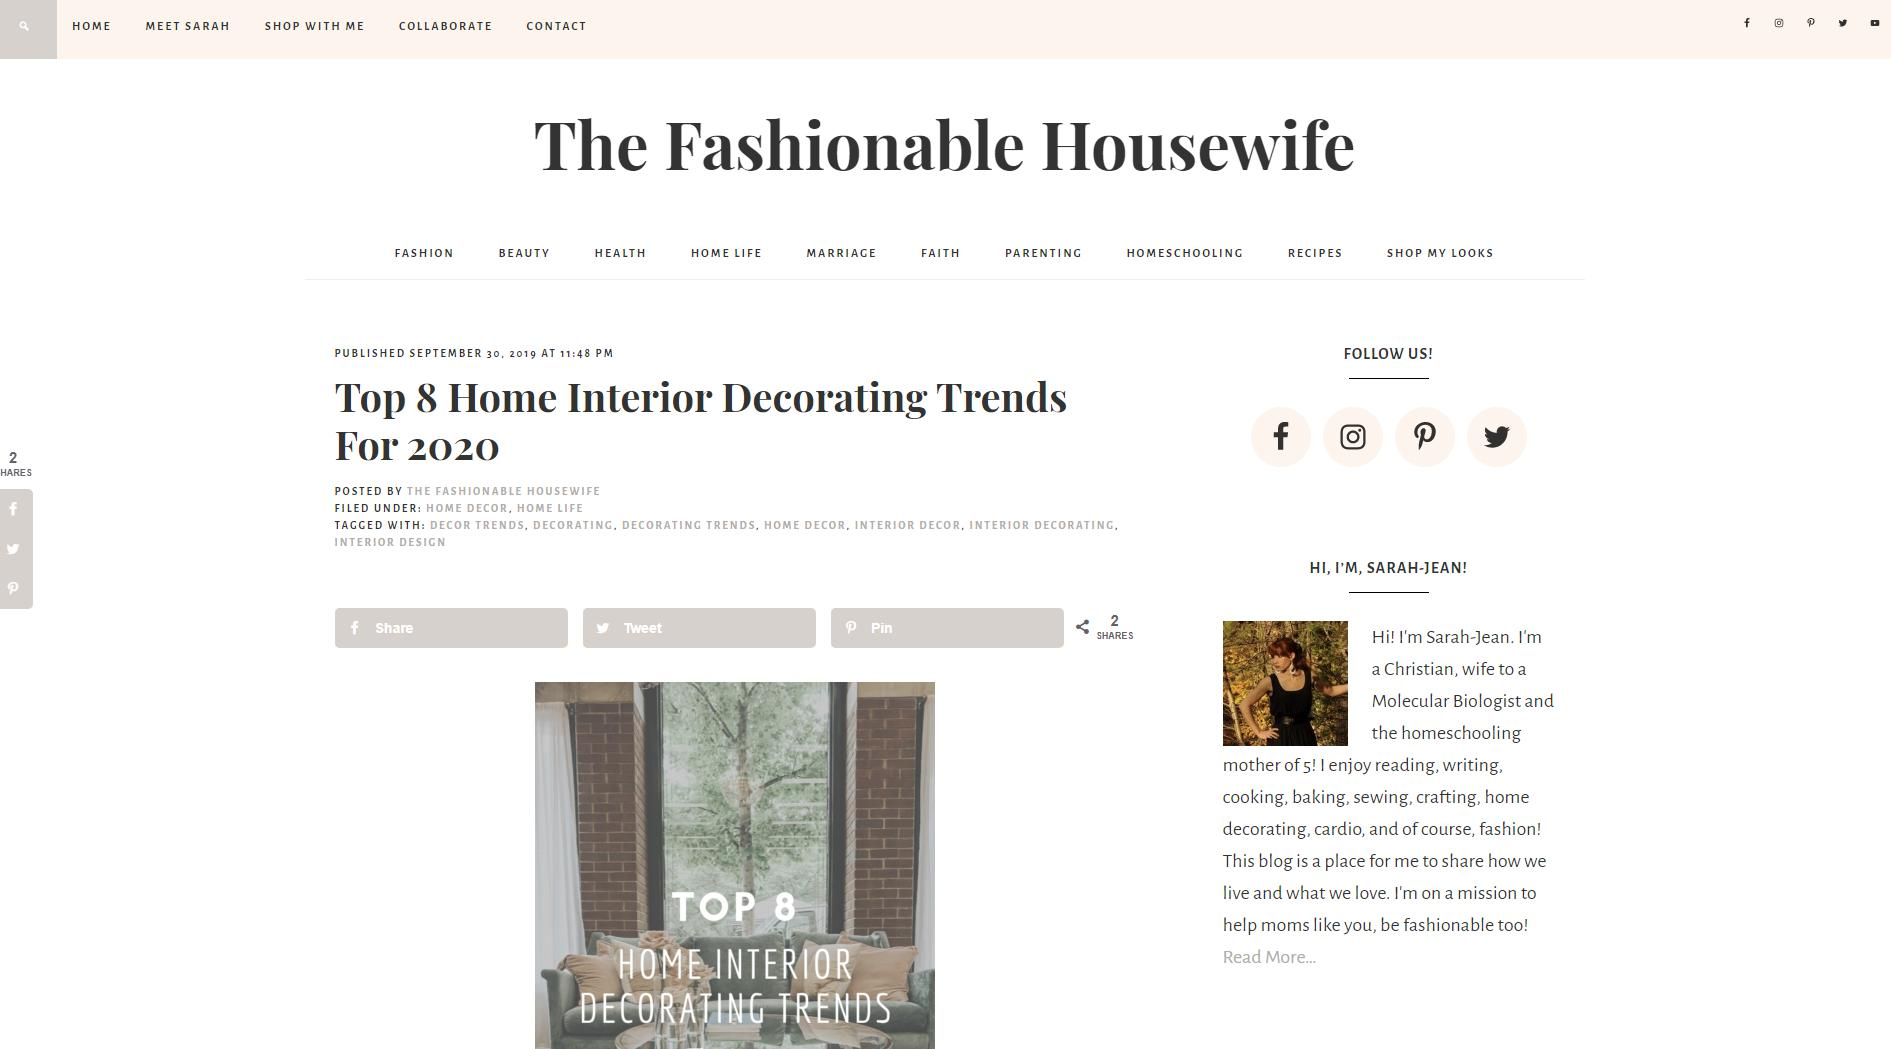 The Fashionable Housewife – October 1st, 2019